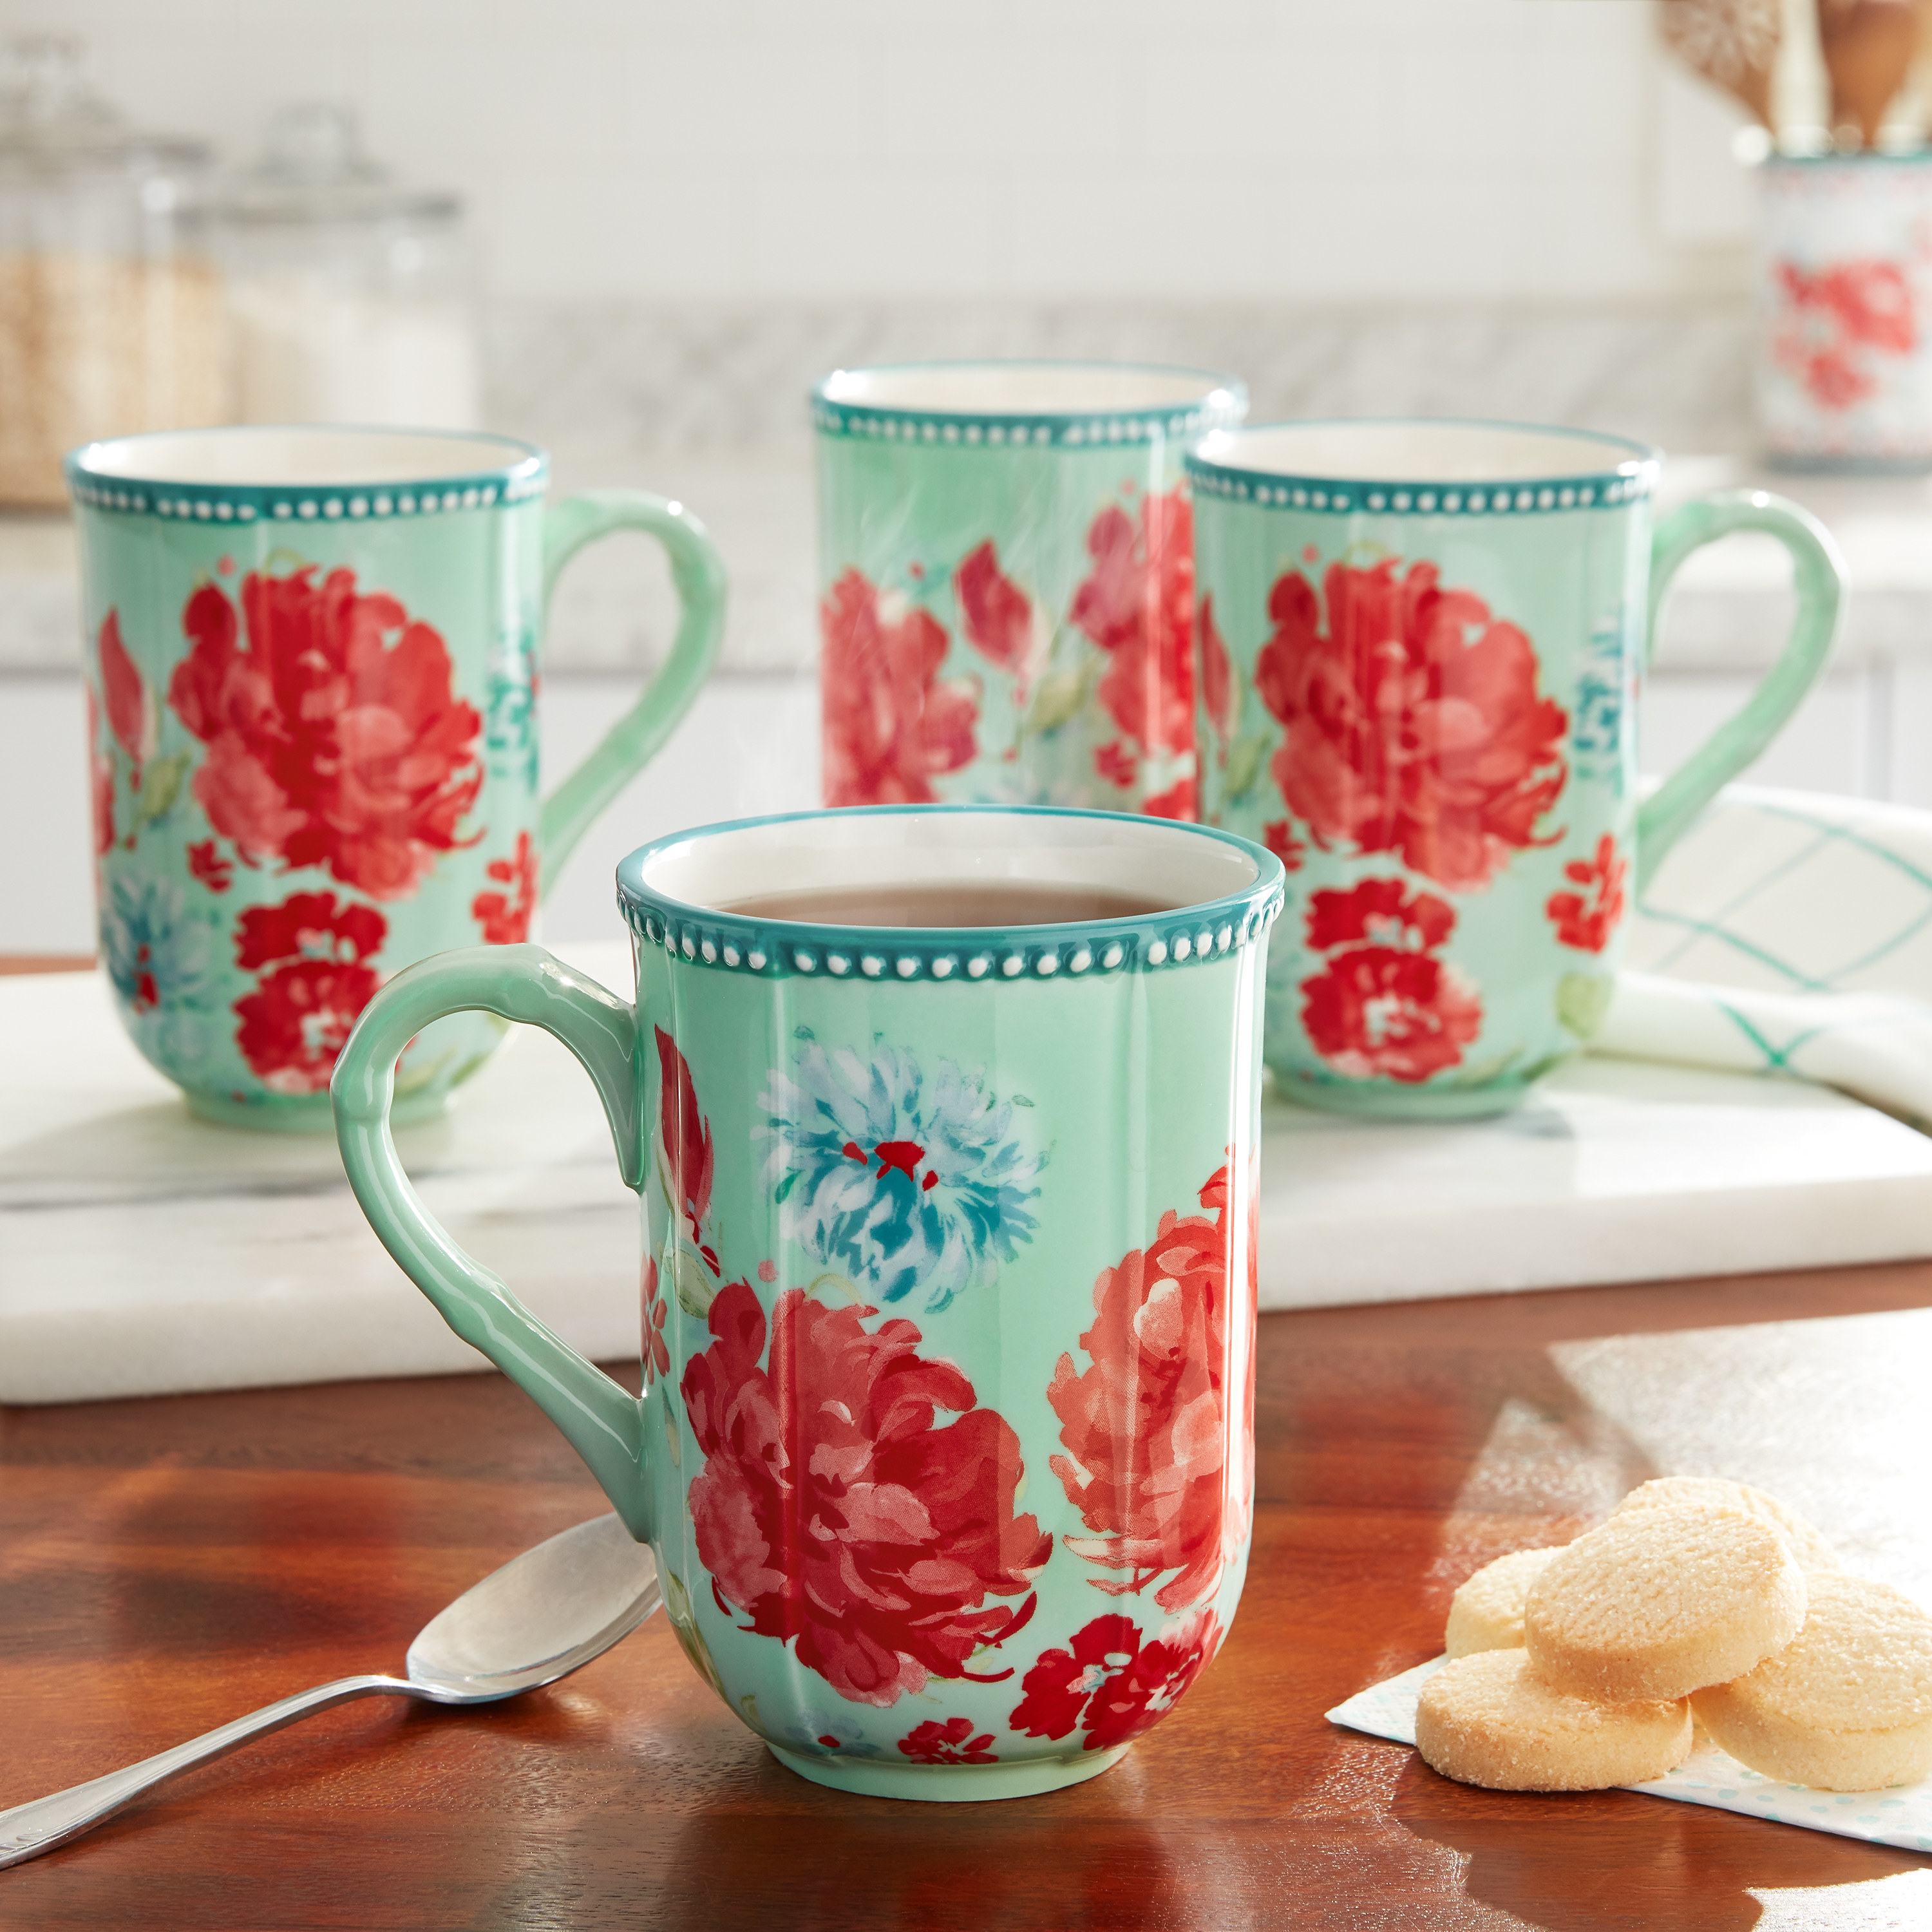 the mugs with red and blue flowers on them